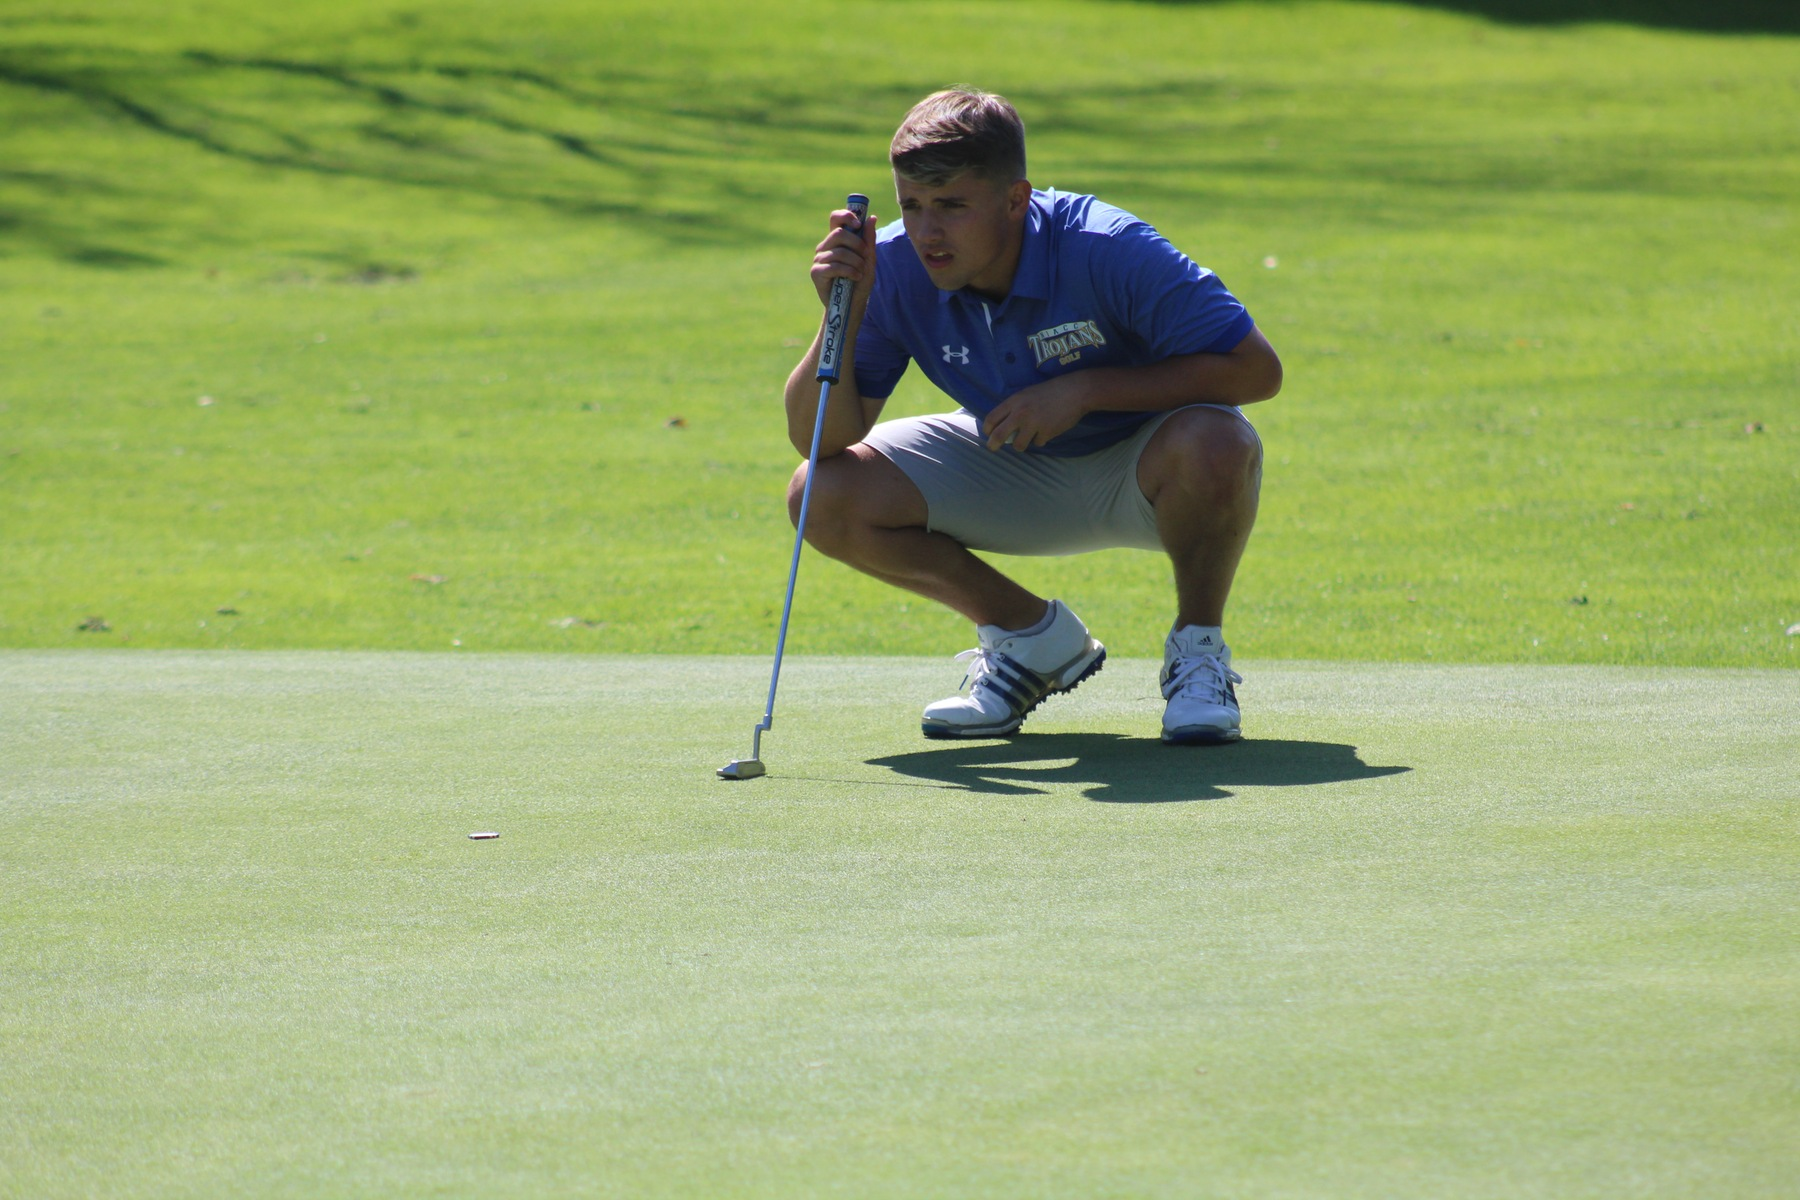 Jackson Hamlin lines up a putt at the NIACC Invitational on Monday at the Mason City Country Club.